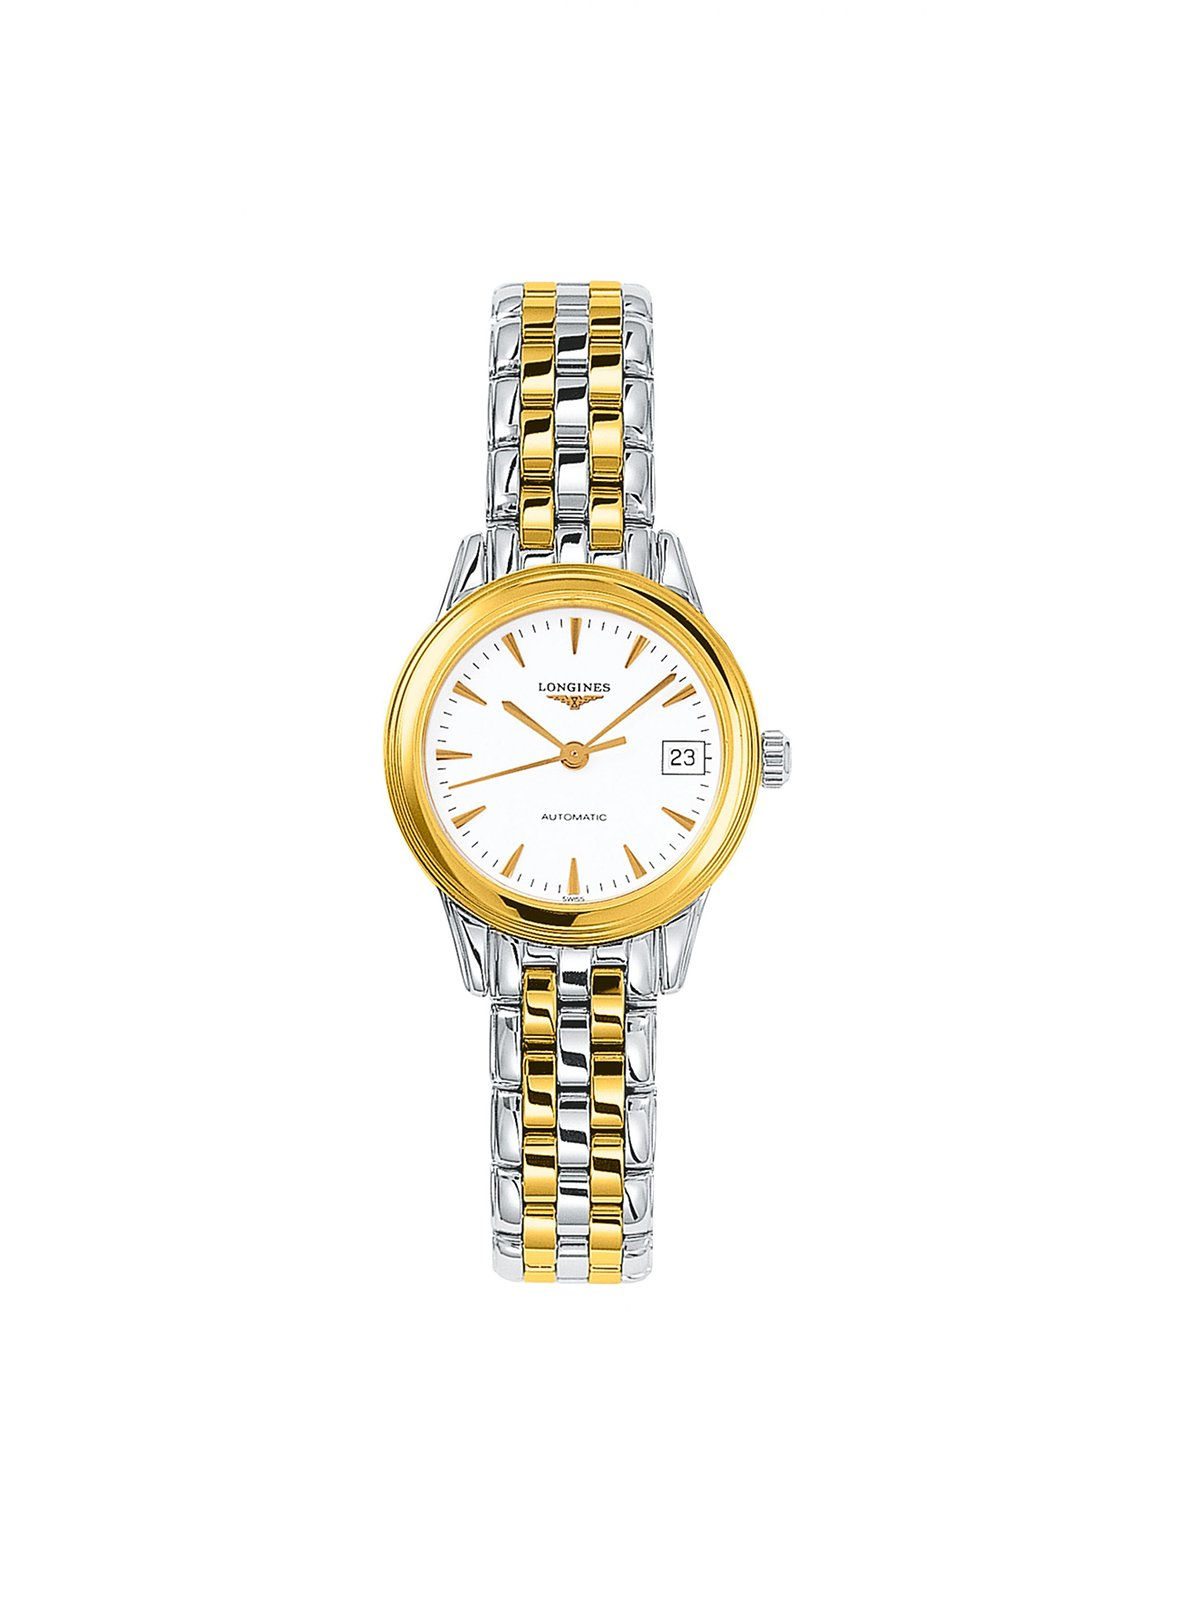 L4.274.3.22.7 Longines Ladies 26mm Flagship Steel & Gold PVD Automatic Watch on Bracelet